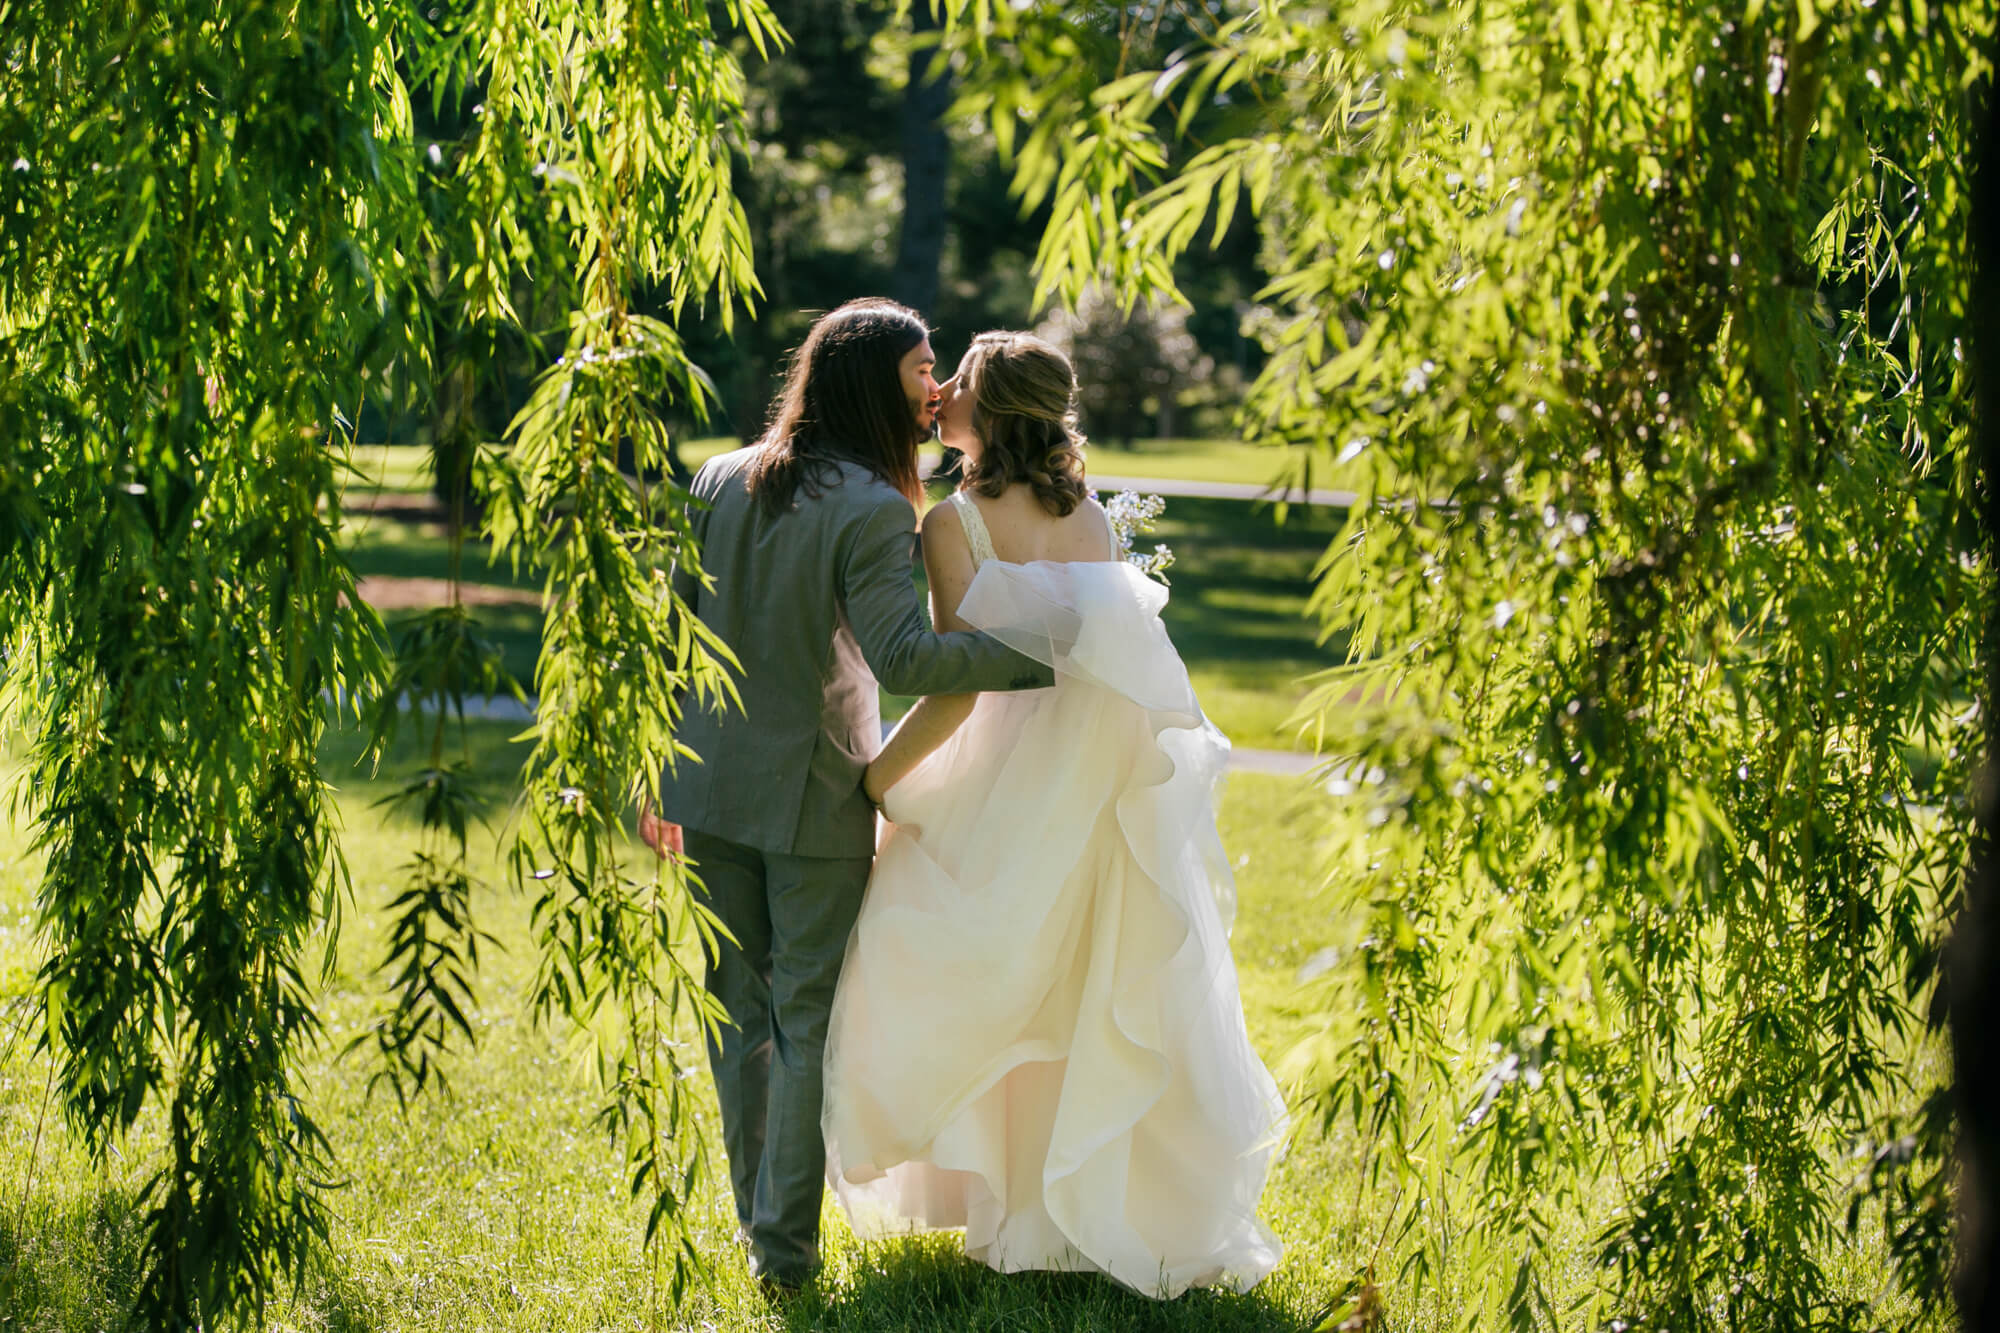 20-weeping-willow-st-louis-forest-park-bride-groom-kiss.jpg